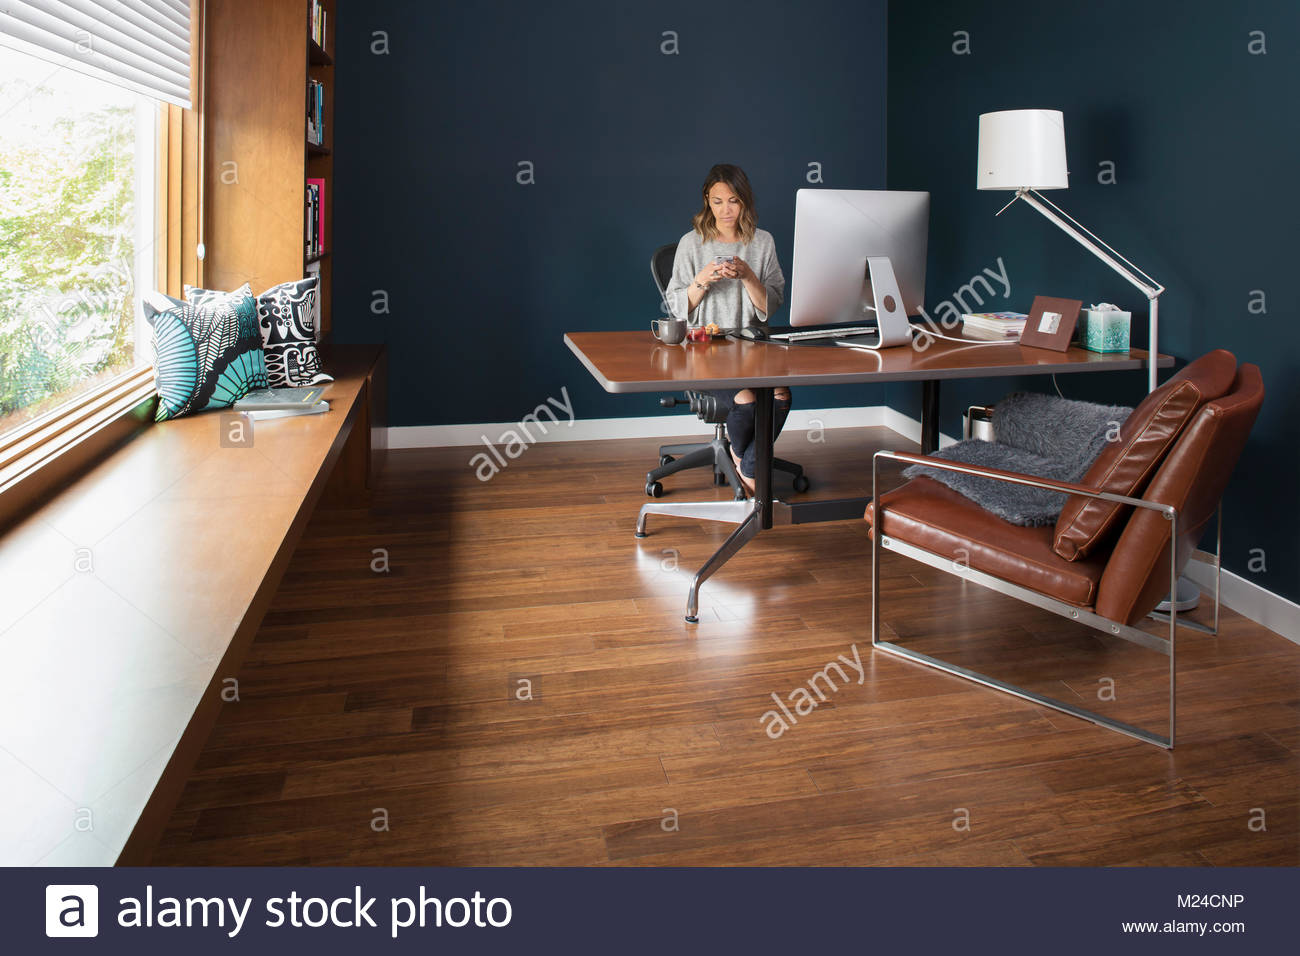 Woman texting with smart phone at computer in home office - Stock Image